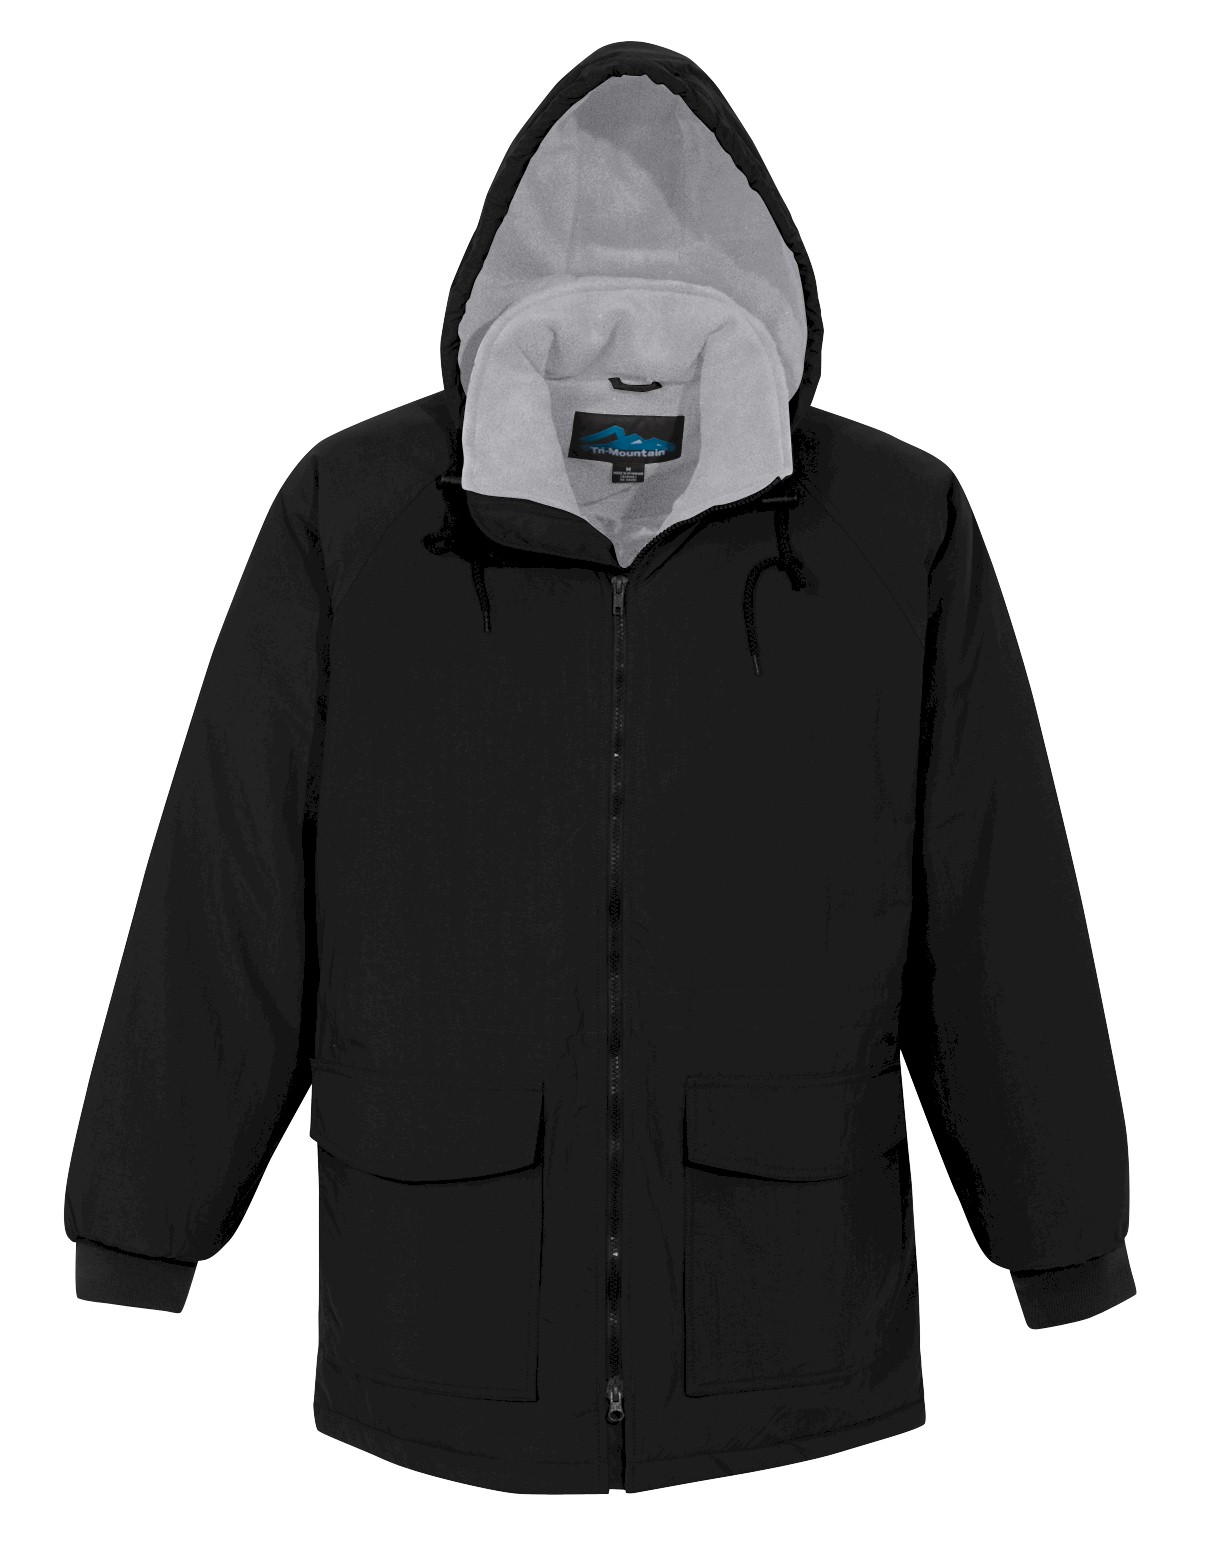 #319904. 5XL BIG. BLACK Retail $ 155.00 Outerwear by TRI MOUNTAIN. ZIP-OUT HOODED PARKA <font face=arial size=2><BR>Special Order Item.</font> <B>Item stocked by Manufacturer.  Allow up to 3 weeks for delivery.</B>